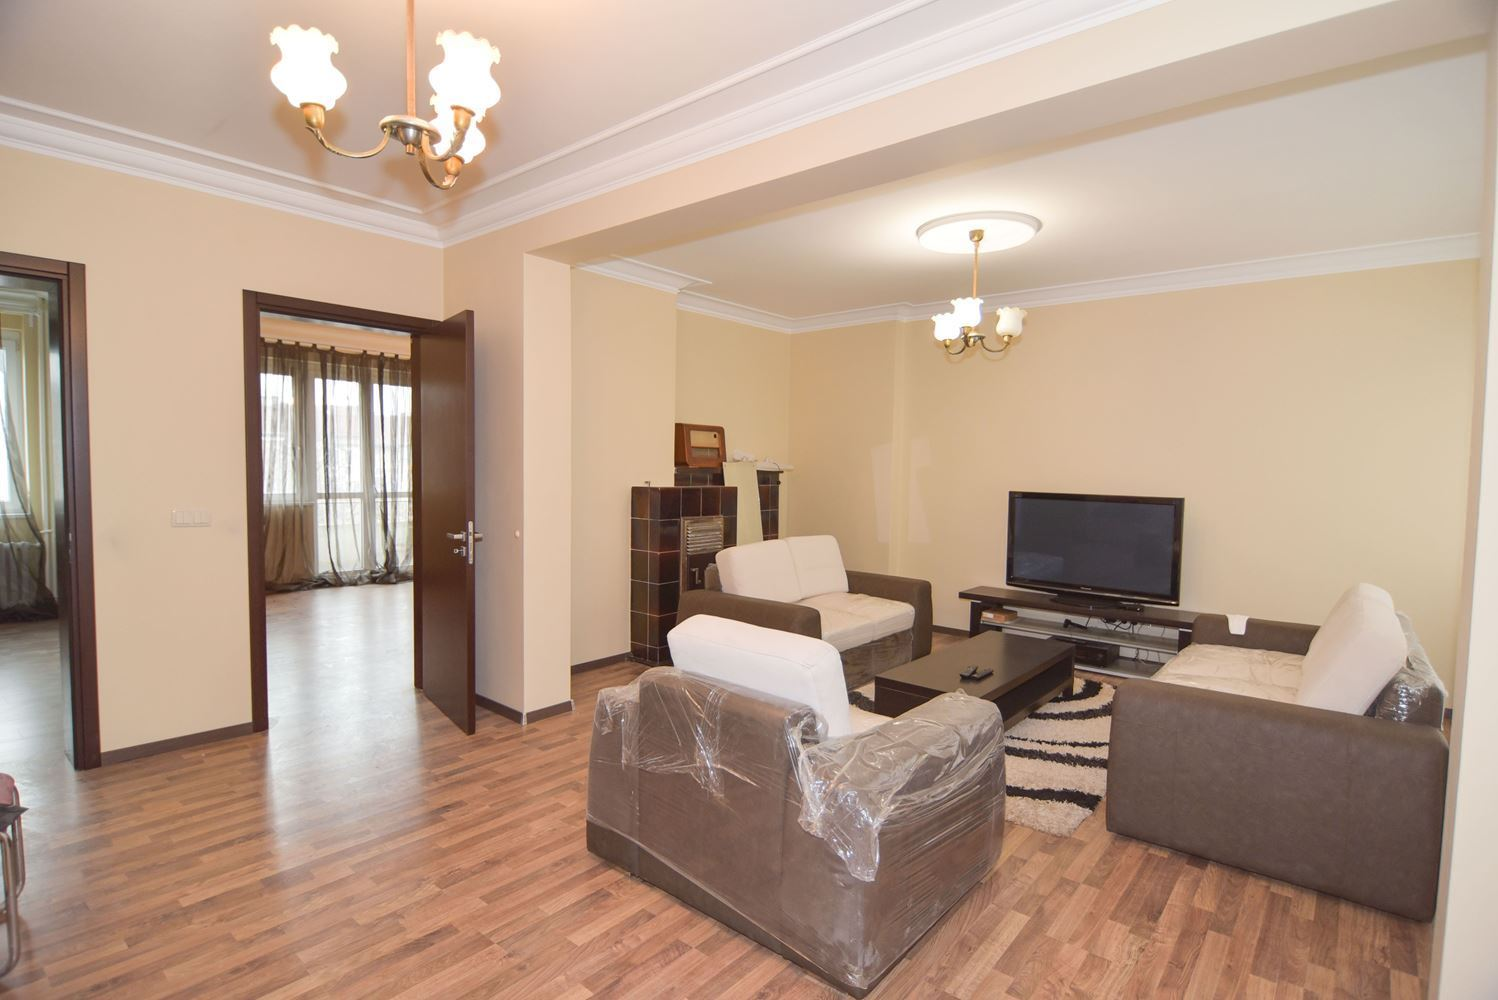 2-bedroom Apartment for Rent, Center